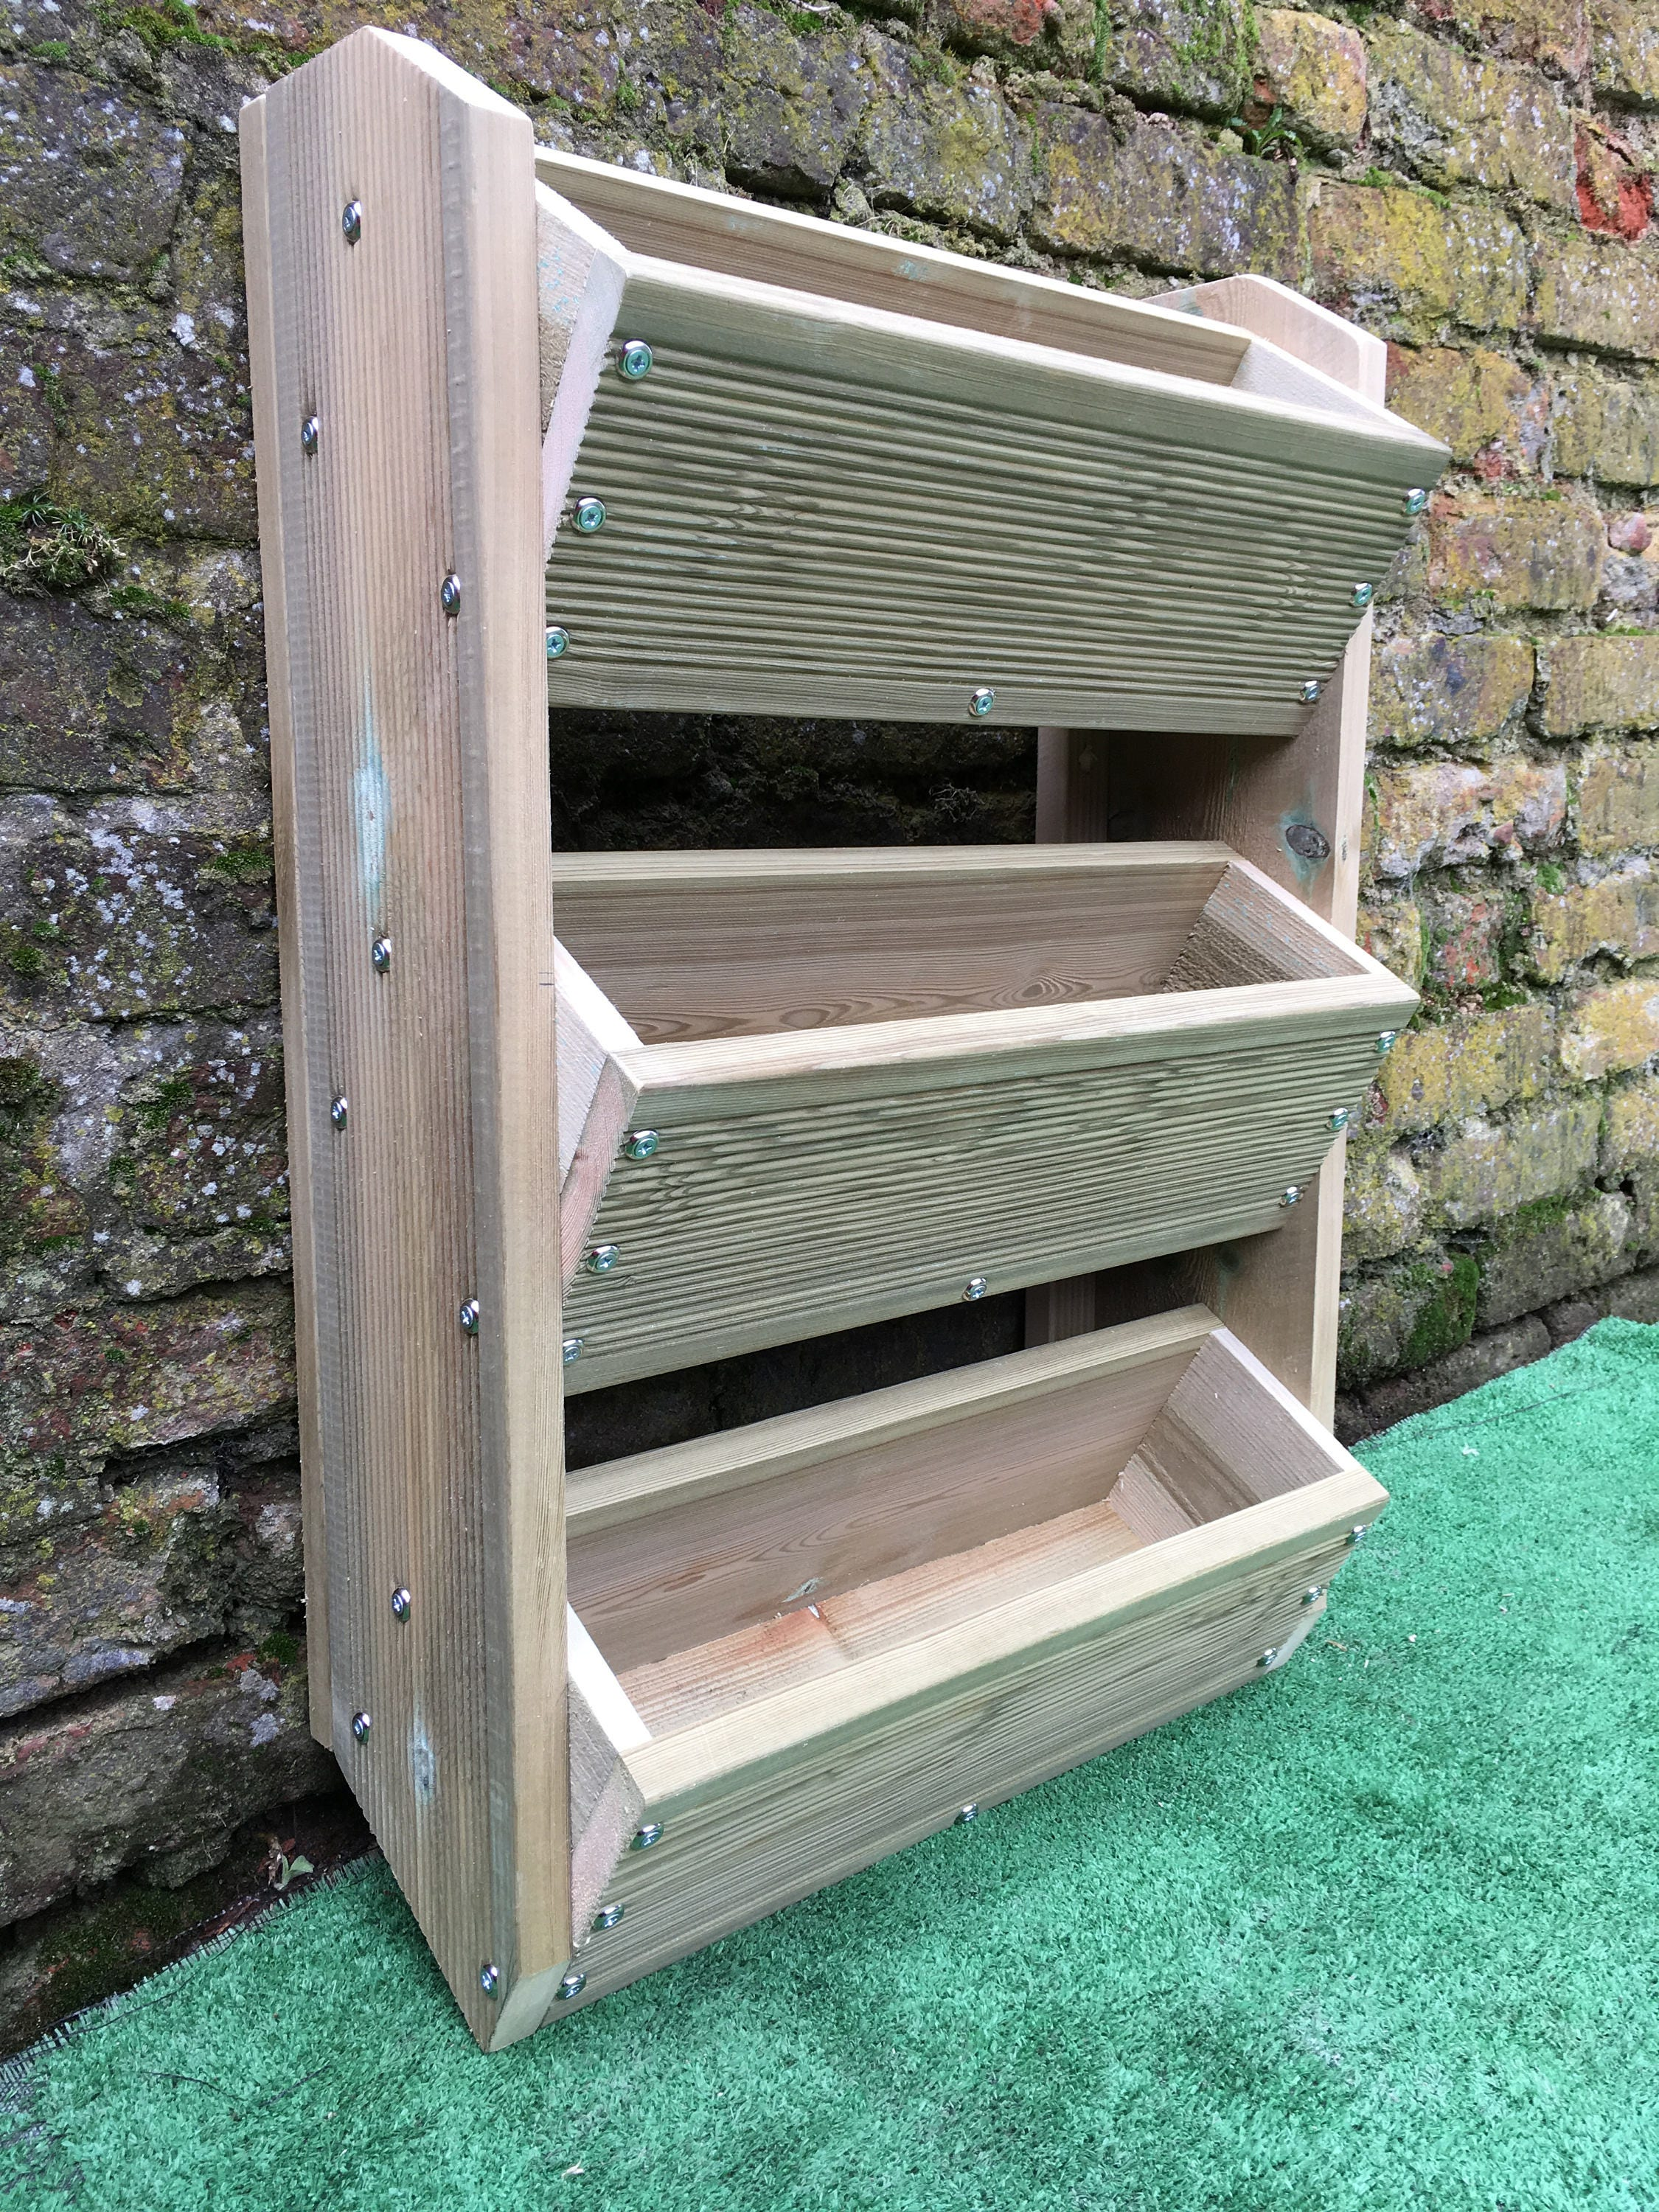 3 tier wall mounted planter for herbs flowers strawberries. Black Bedroom Furniture Sets. Home Design Ideas